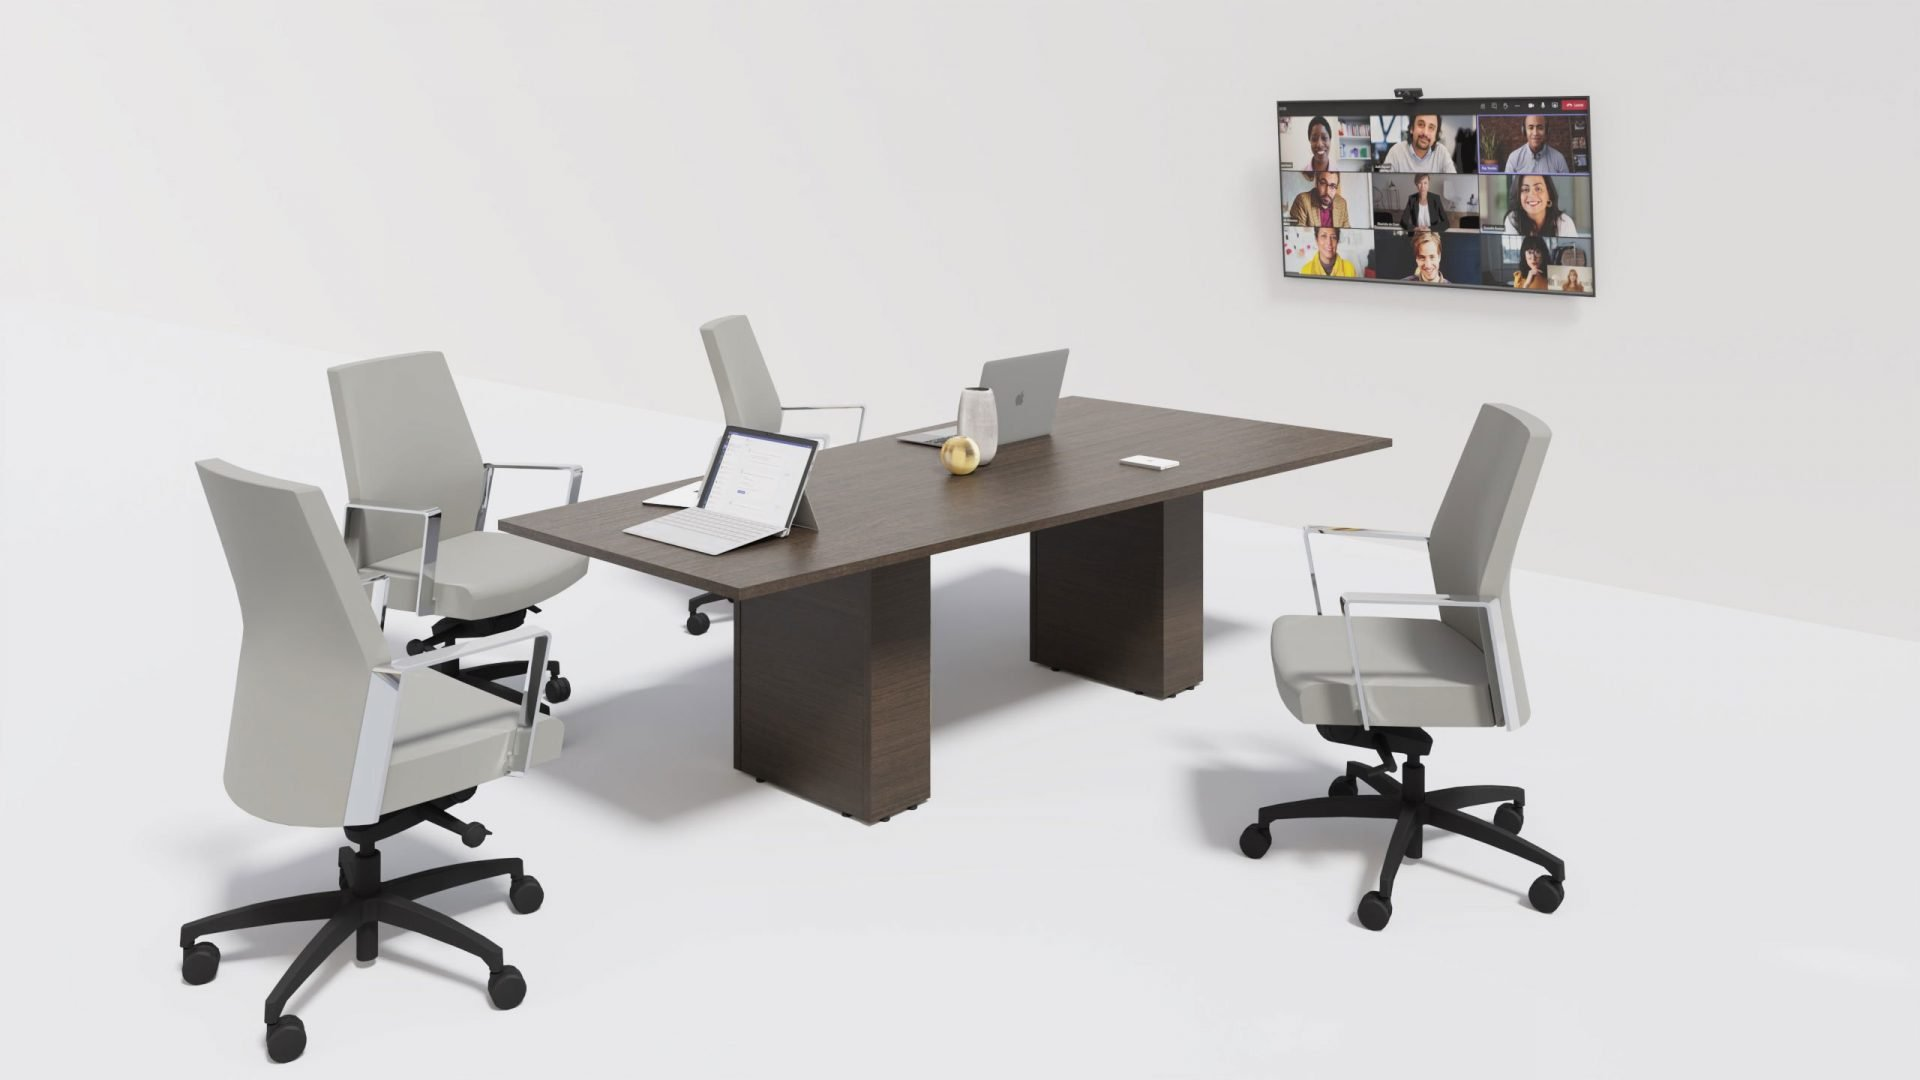 Trapezoid Boardroom Table 1402 in the scene